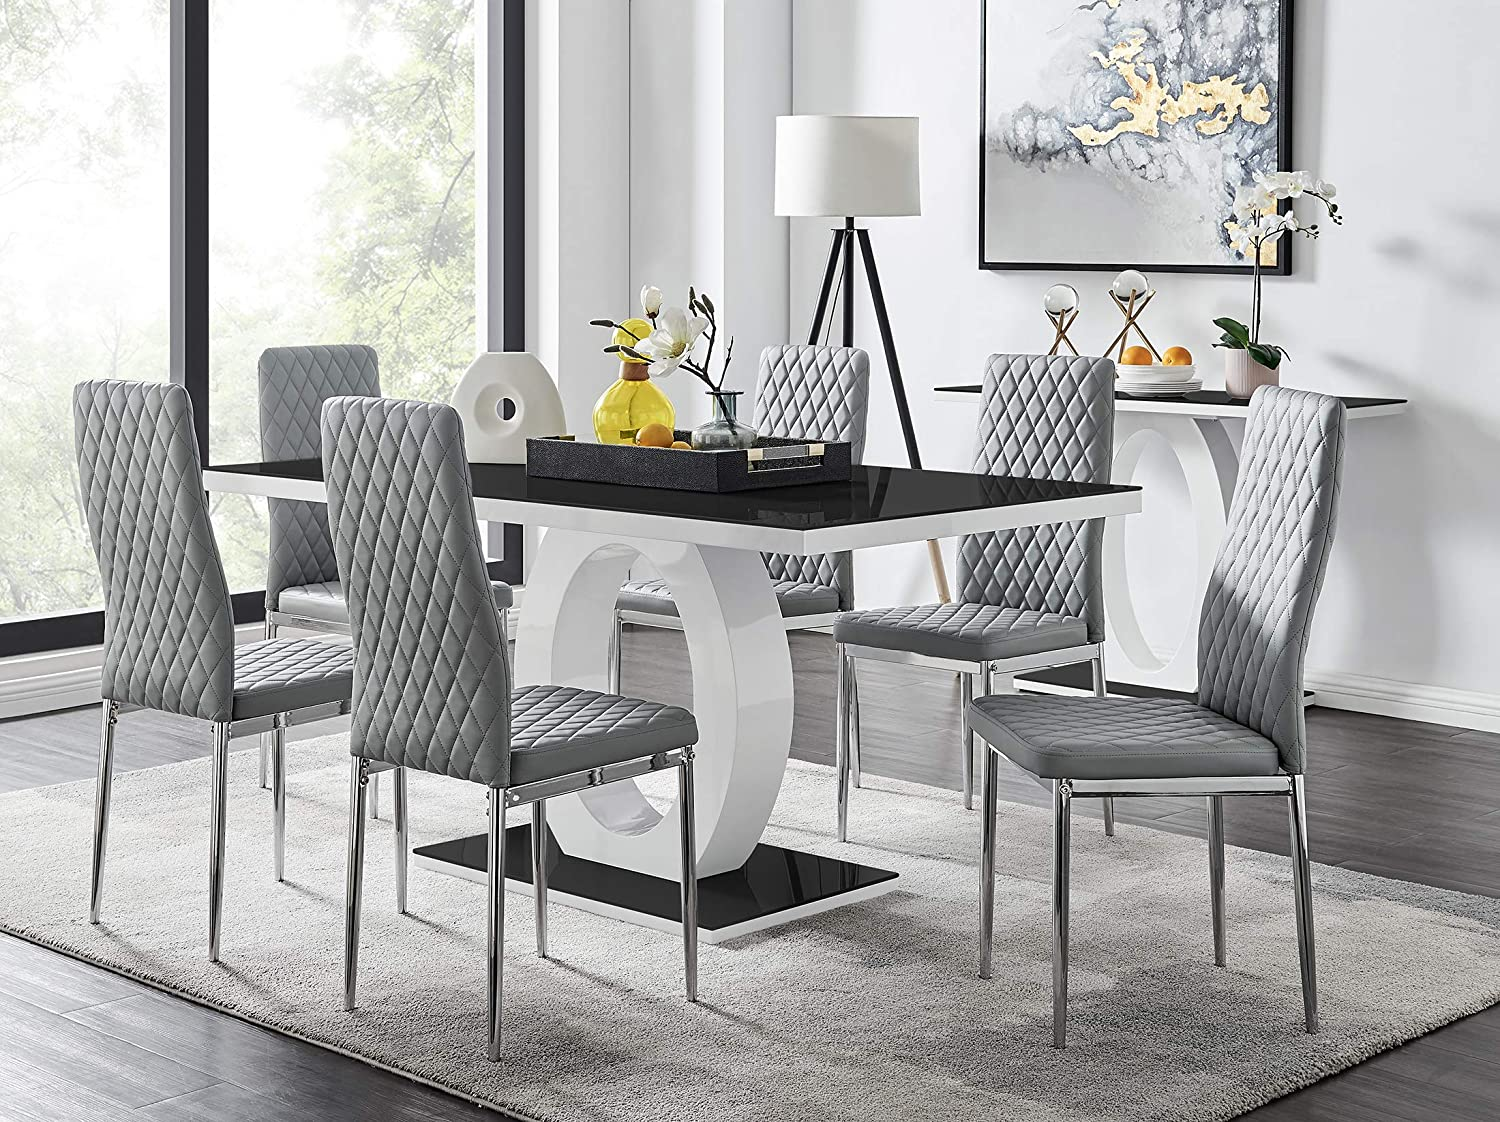 White High Gloss Glass Dining Table Set, Dining Room Chairs Set Of 6